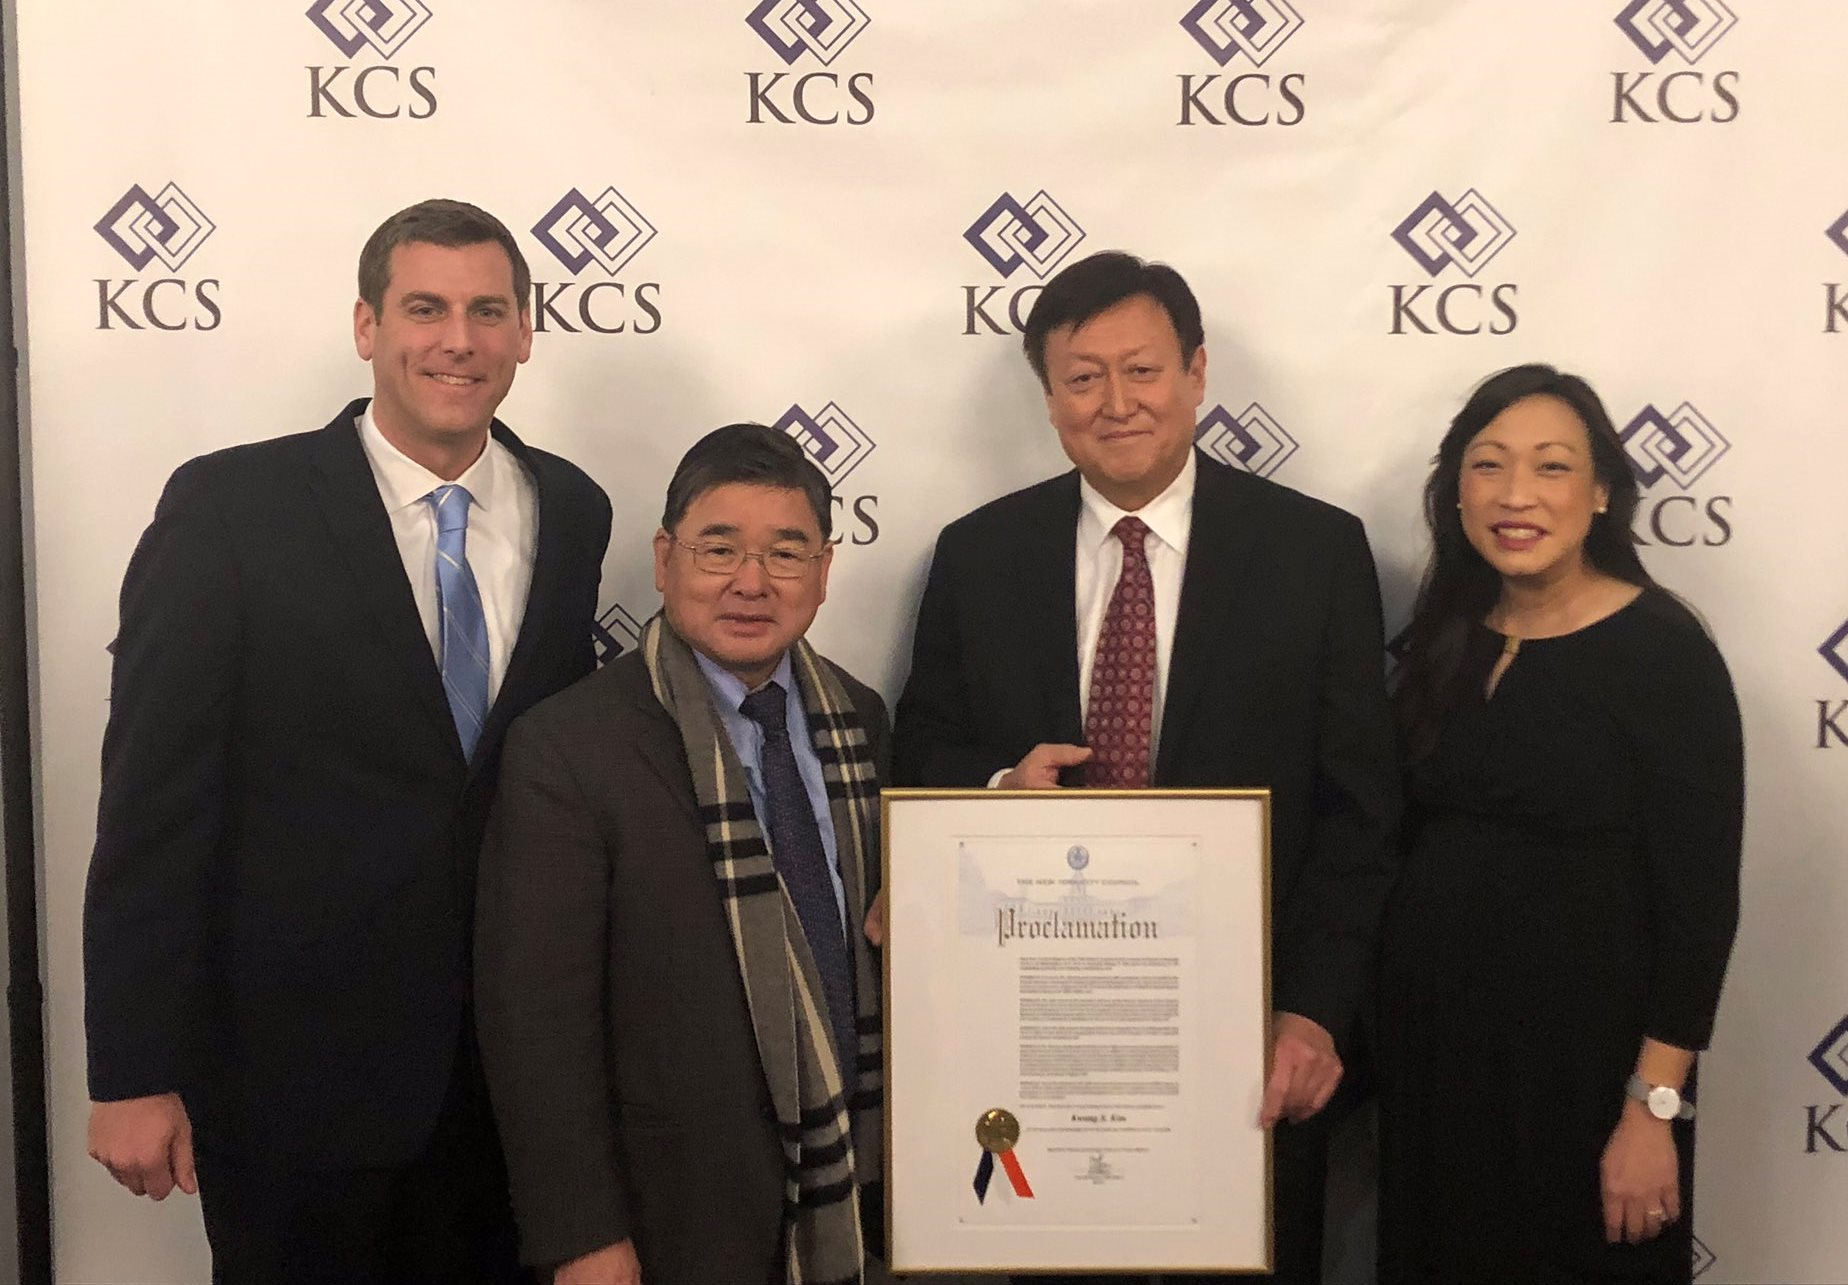 On December 19, 2018, Assemblyman Braunstein attended the retirement party for Kwang Suk Kim, President of Korean Community Services of Metropolitan New York, Inc.